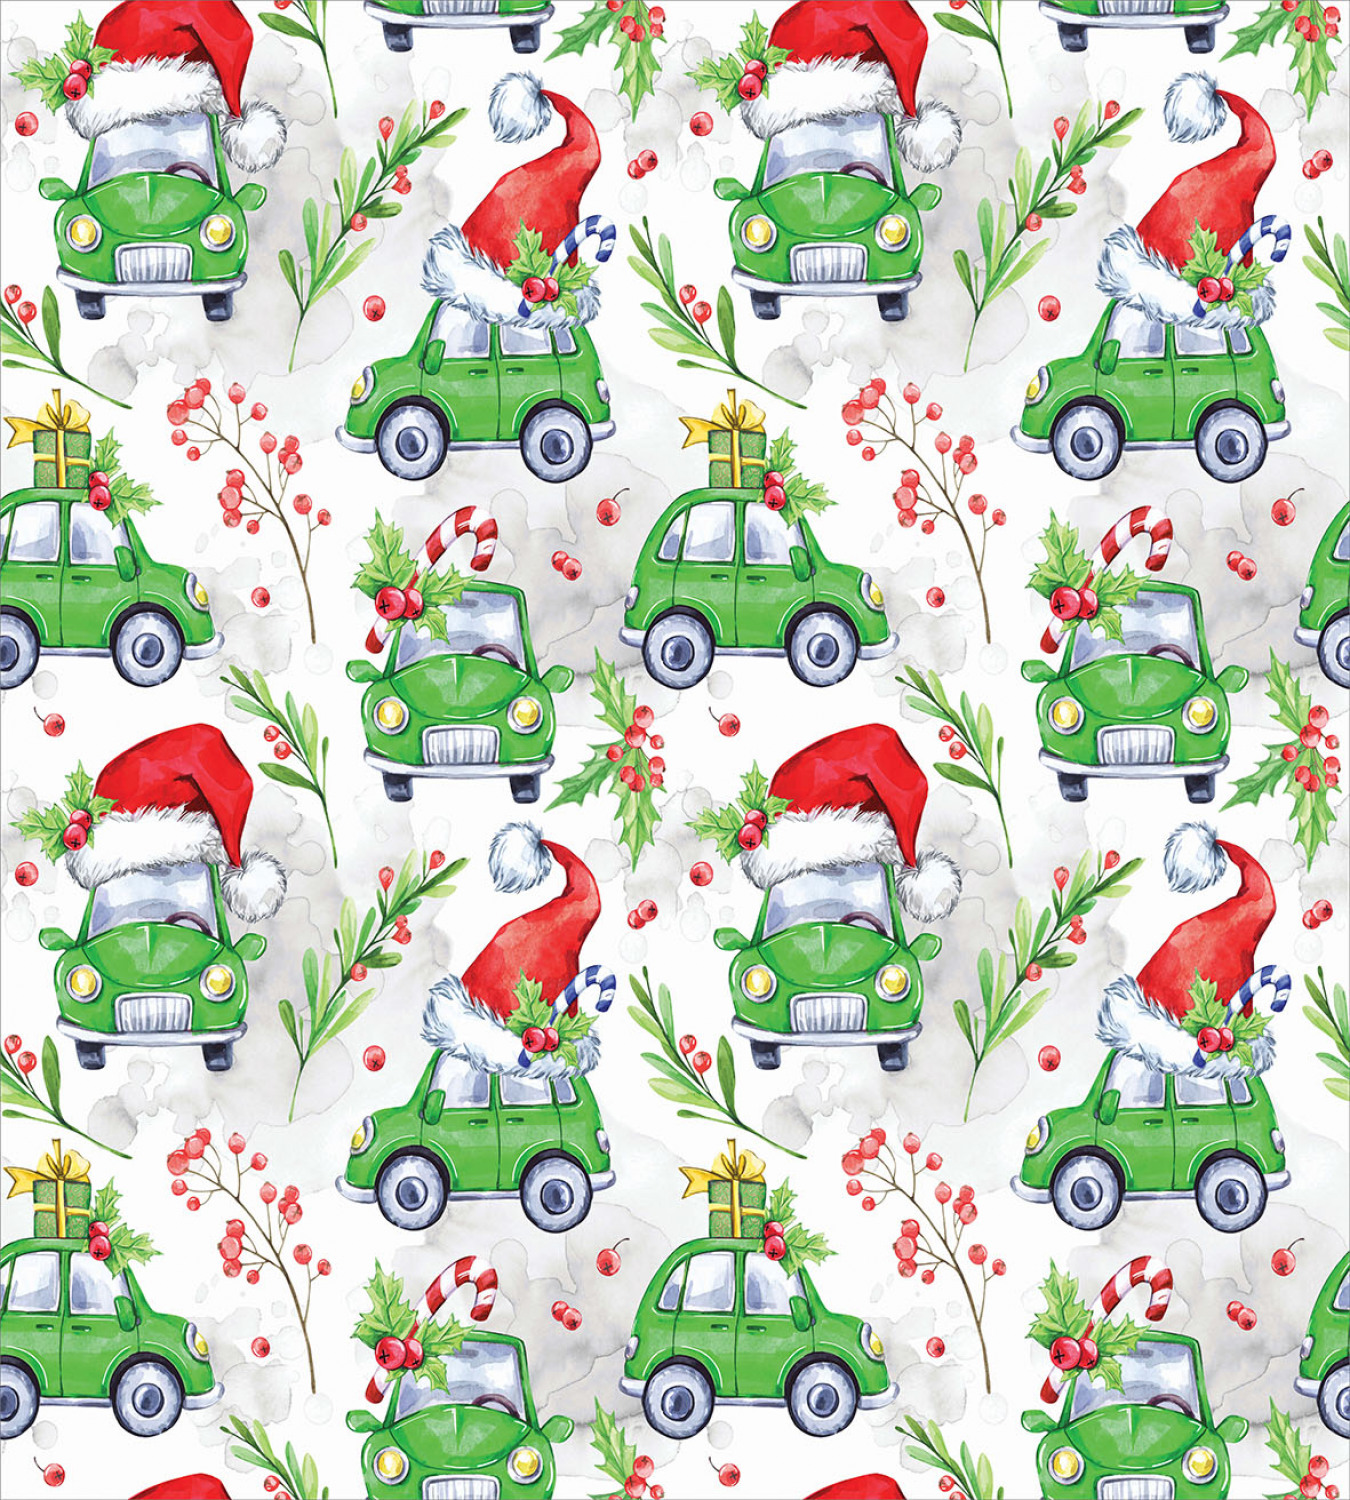 Colorful-Cars-Duvet-Cover-Set-Twin-Queen-King-Sizes-with-Pillow-Shams-Bedding miniature 59